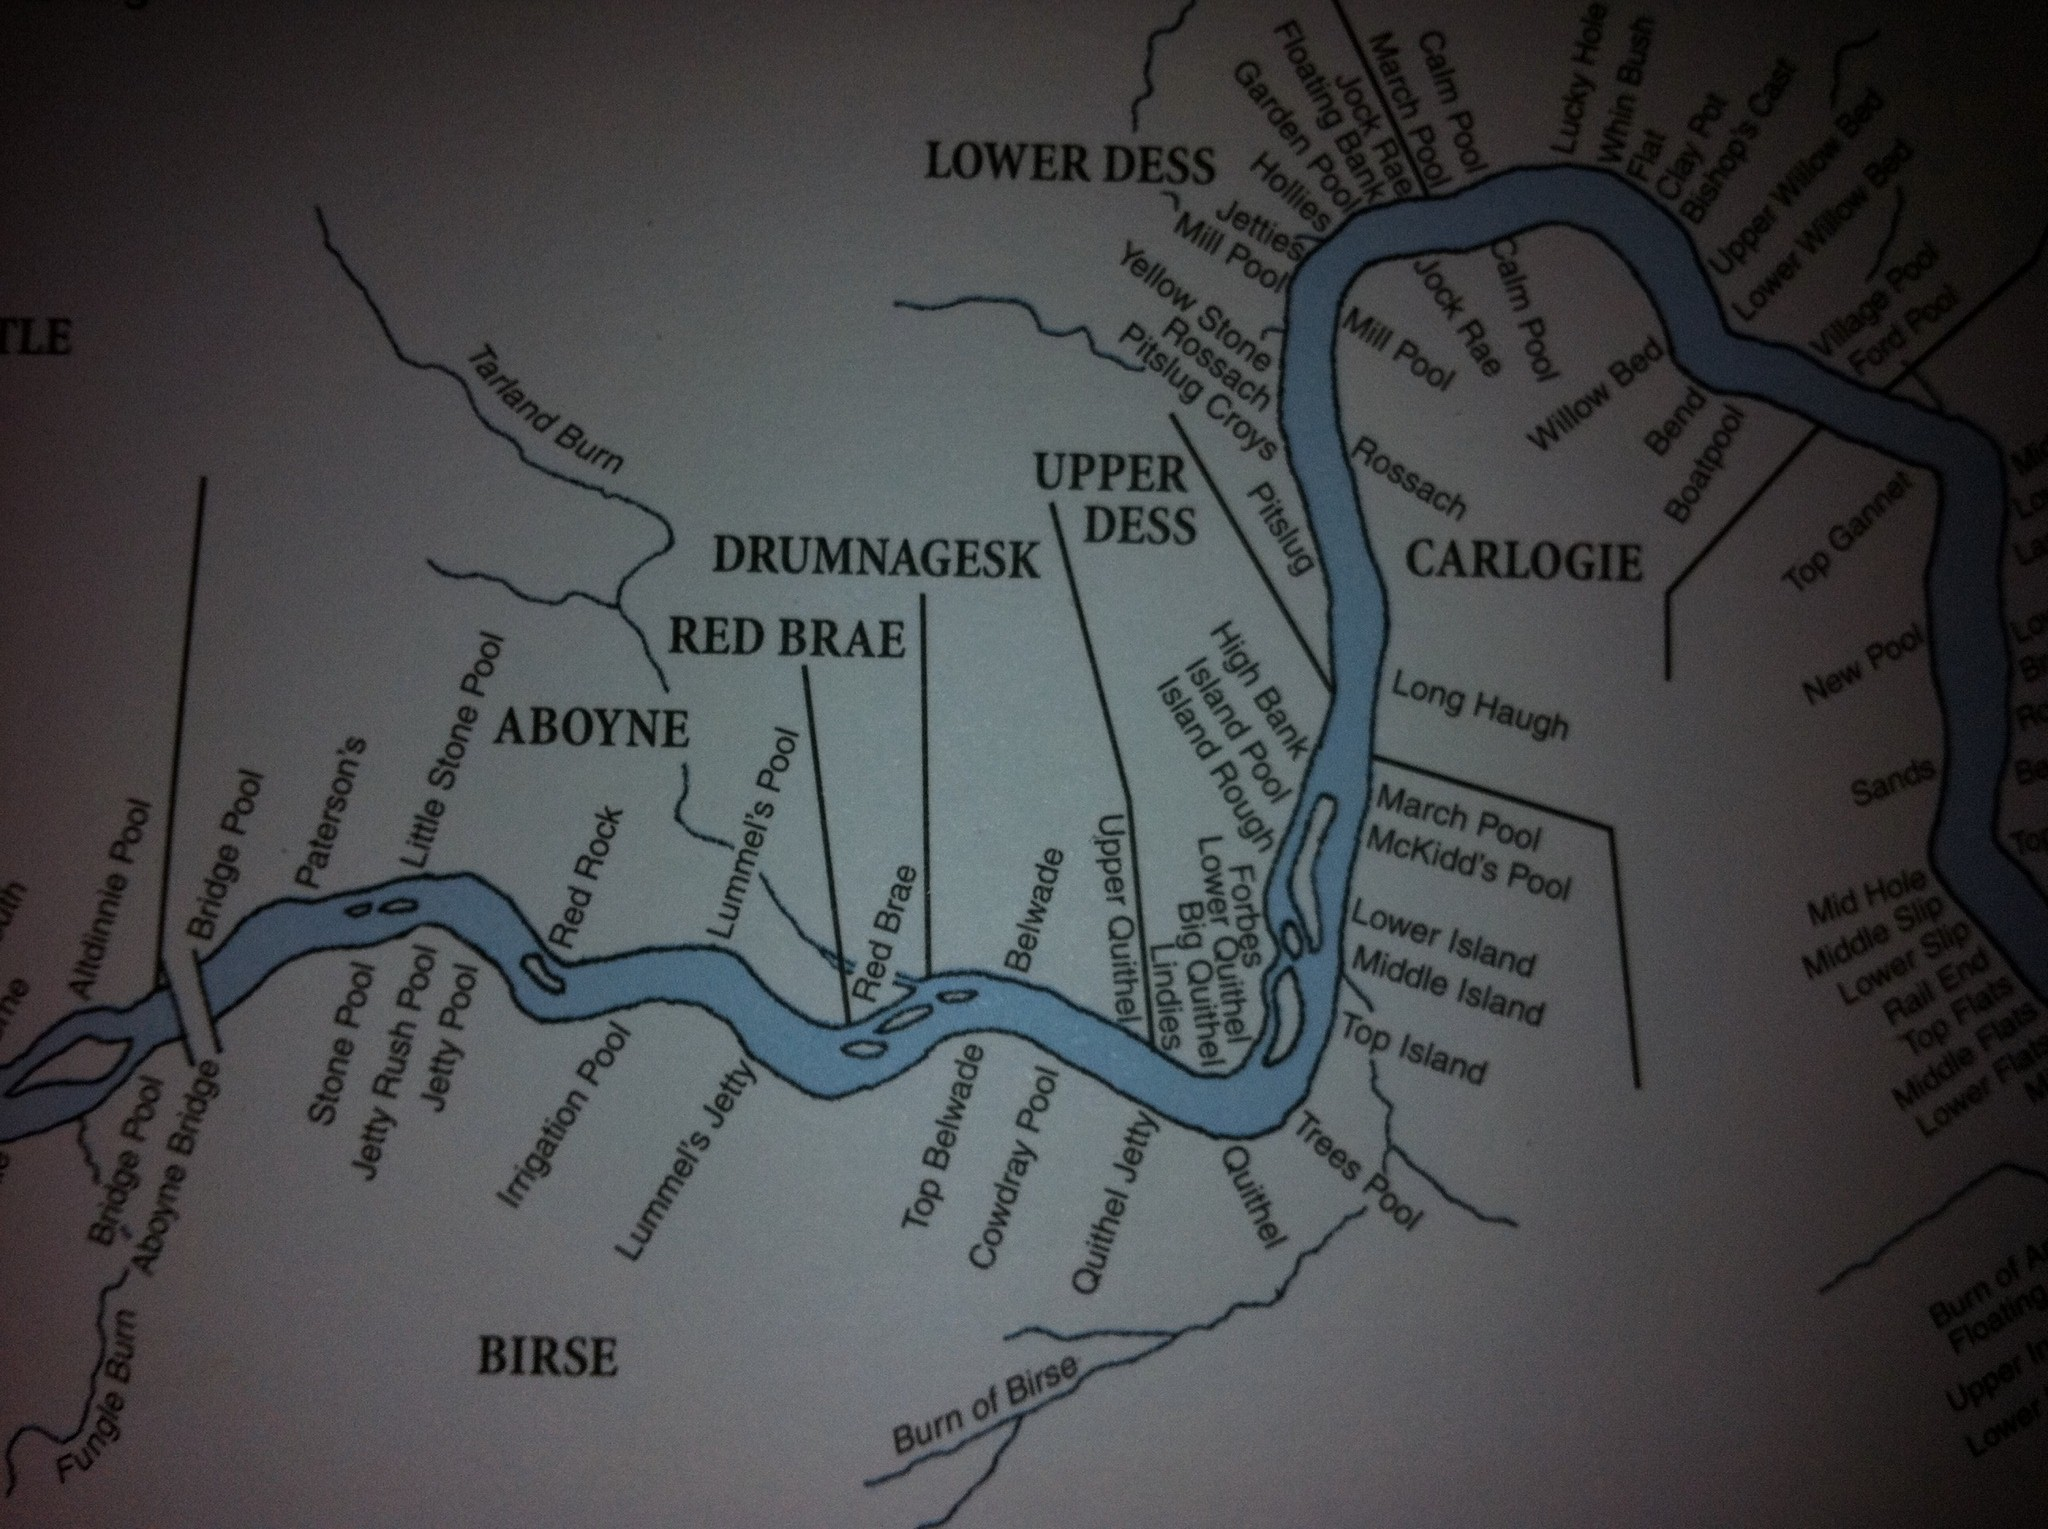 Upper Dess Map